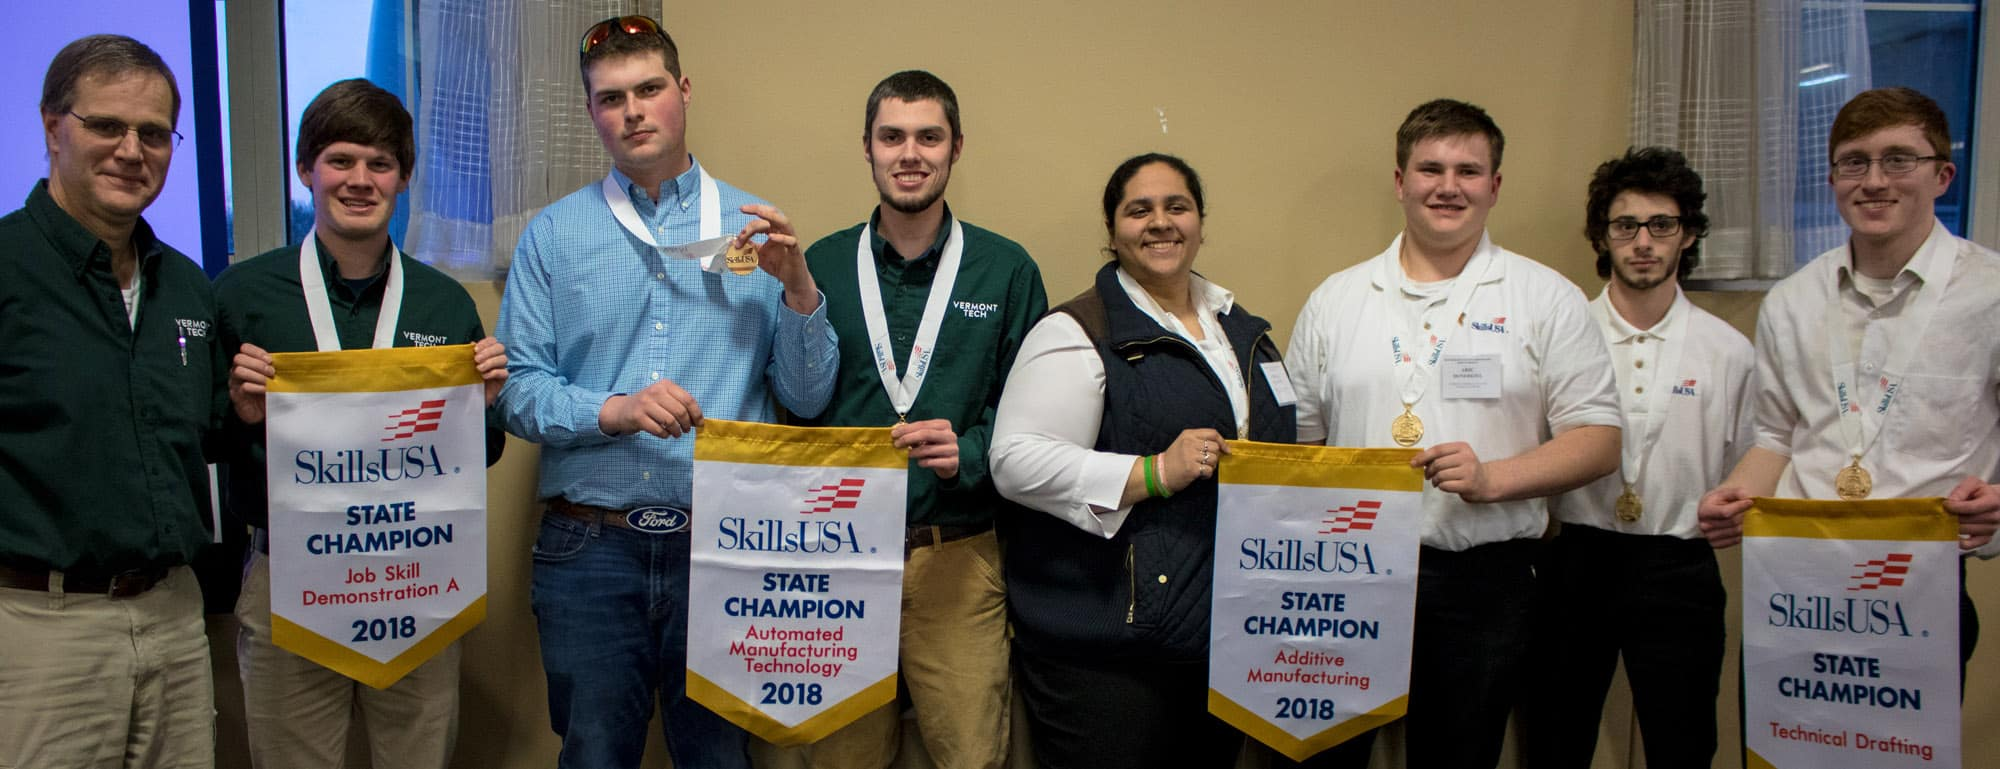 SkillsUSA, students win gold and bronze, flags, female students, male students, STEM